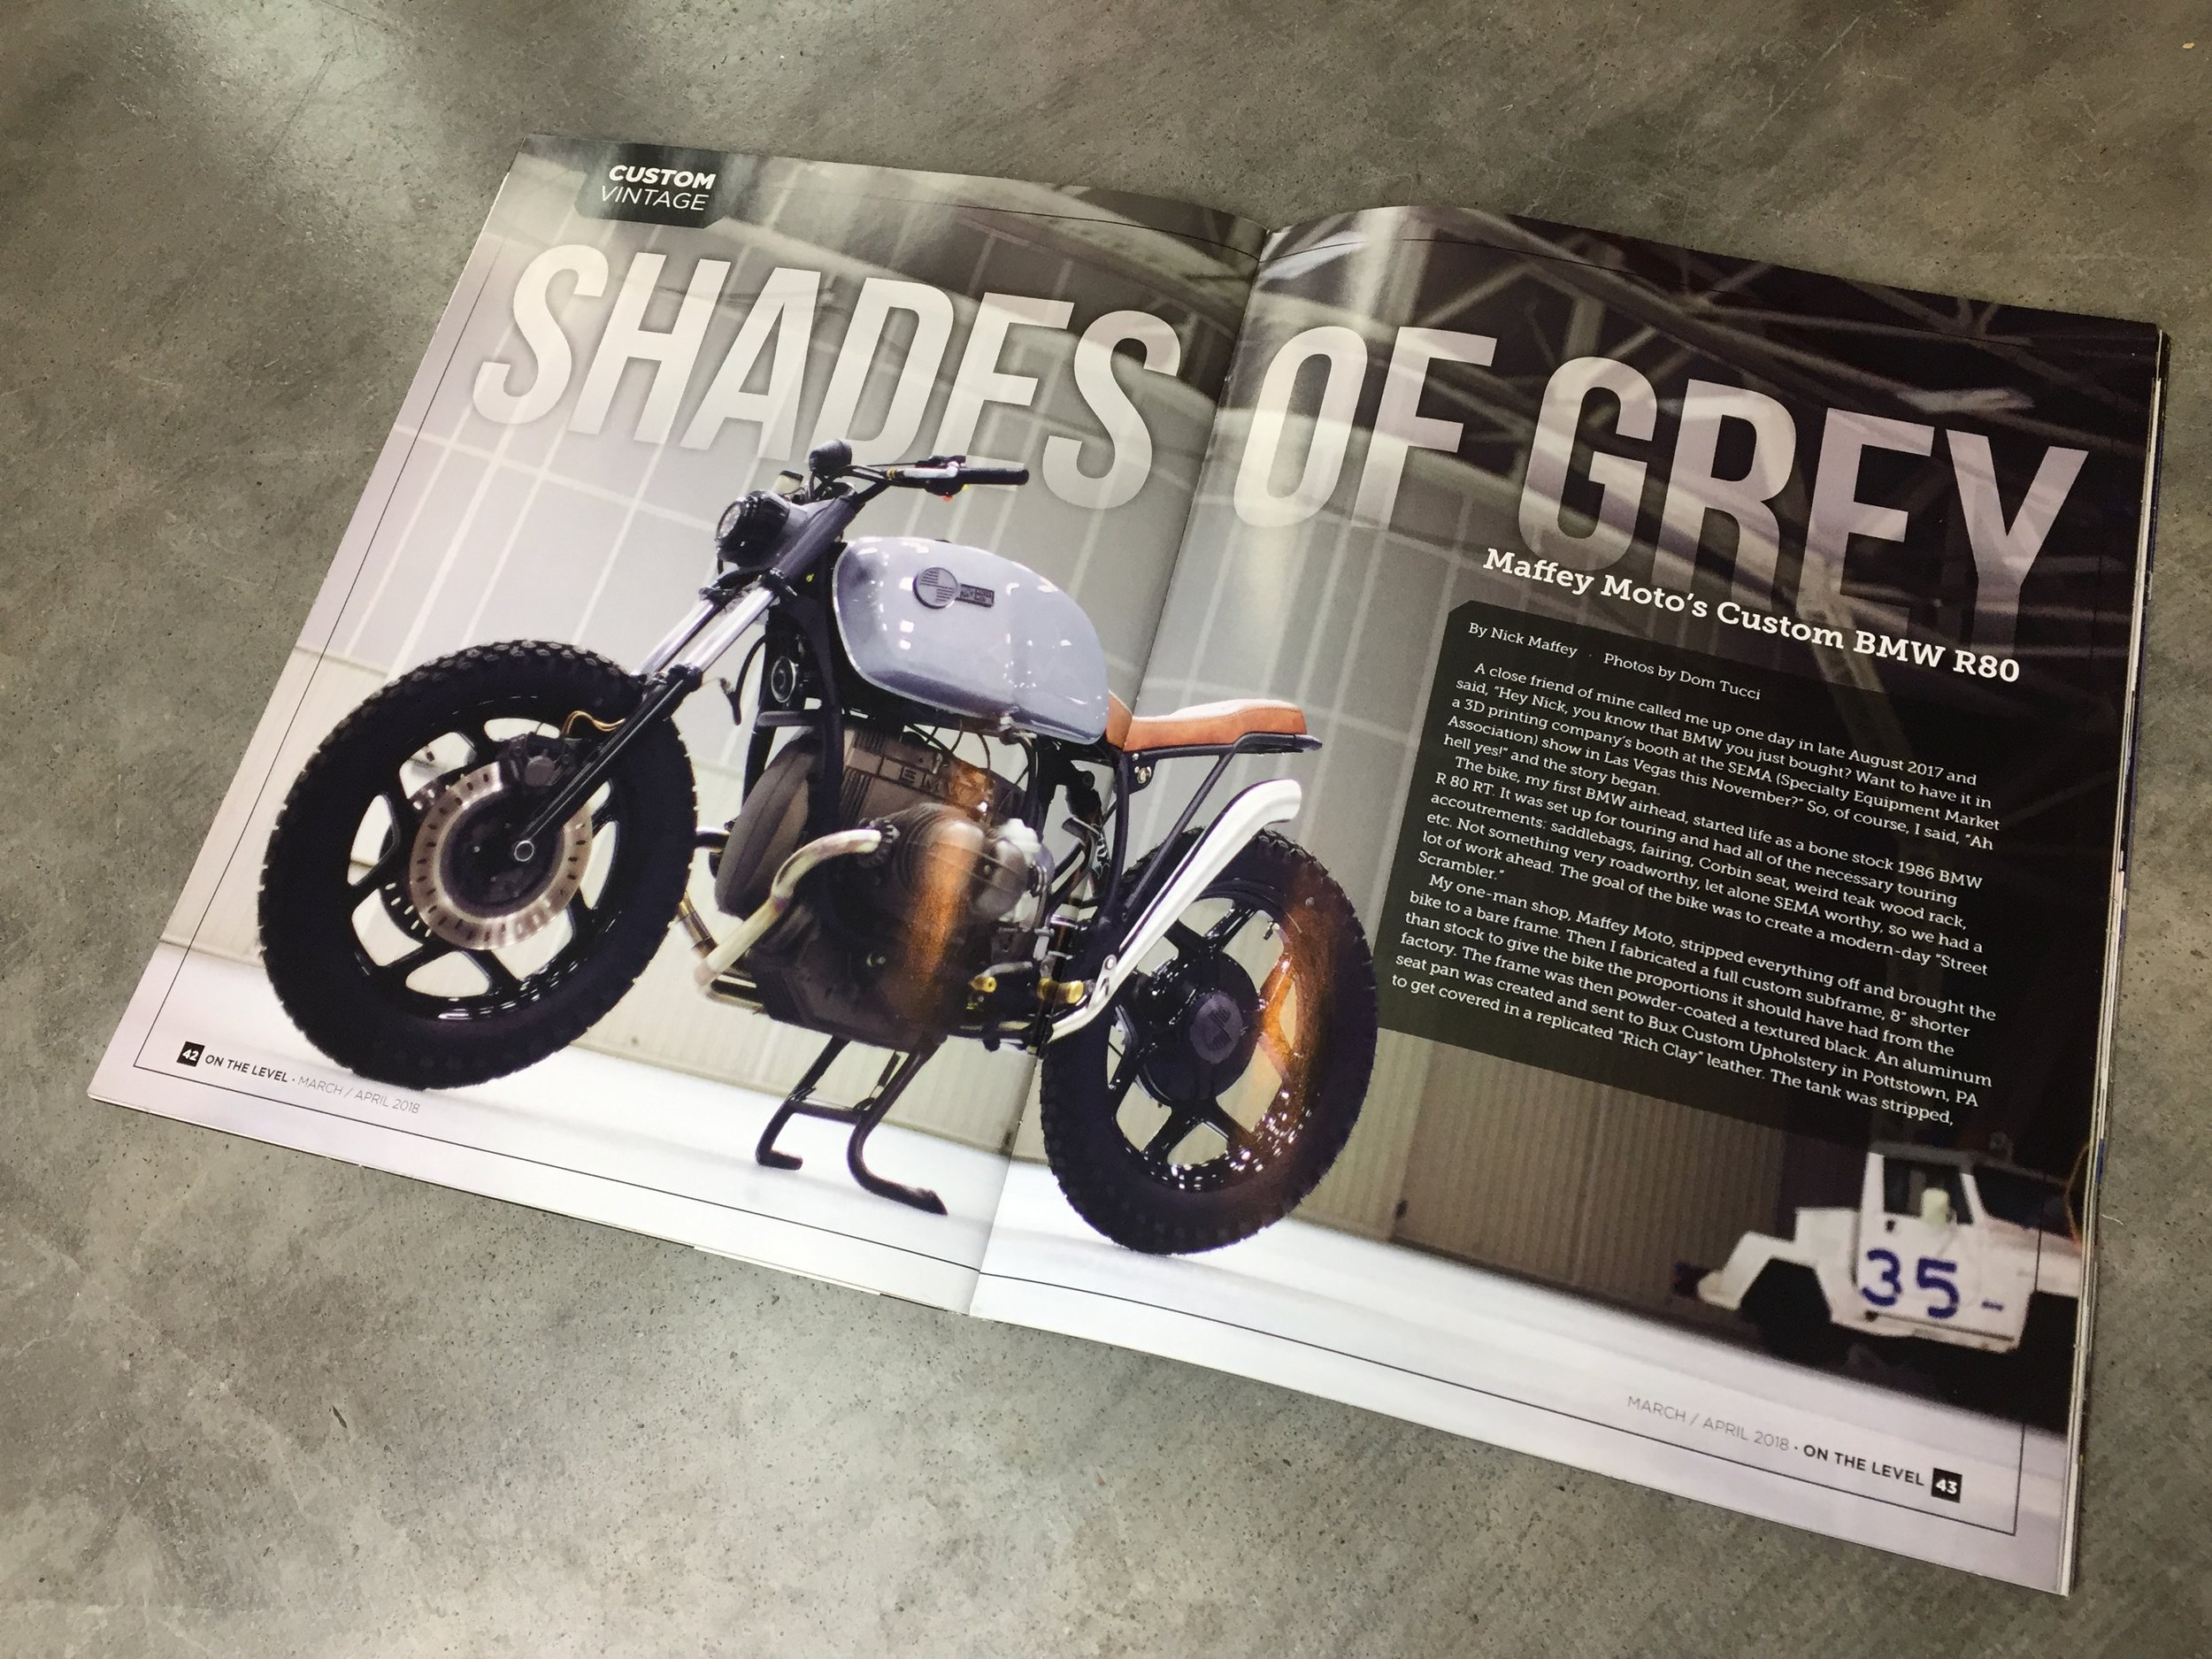 On The Level Magazine Feature Article March/ April 2018 Issue - Full four page article featuring the R80 BMW build and detailing its build process.